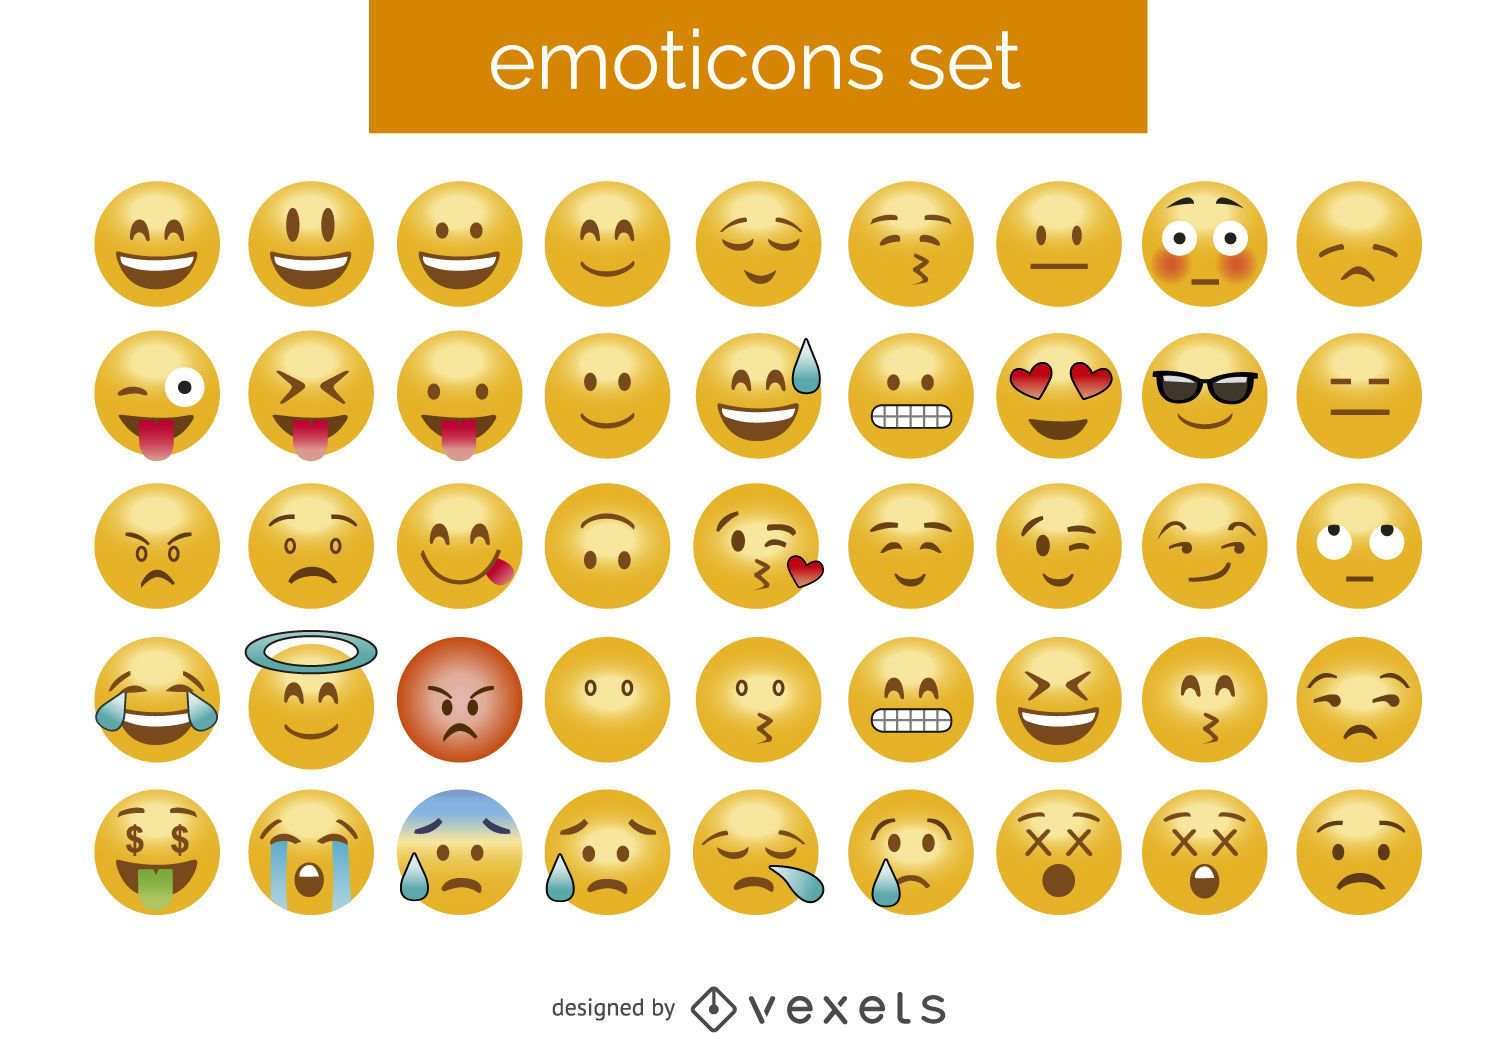 Emotion Faces Outline Wiring Diagrams Icbatterybackuplithiumbattery Powersupplycircuit Circuit 3d Emoticon Set Vector Download Angry Face My